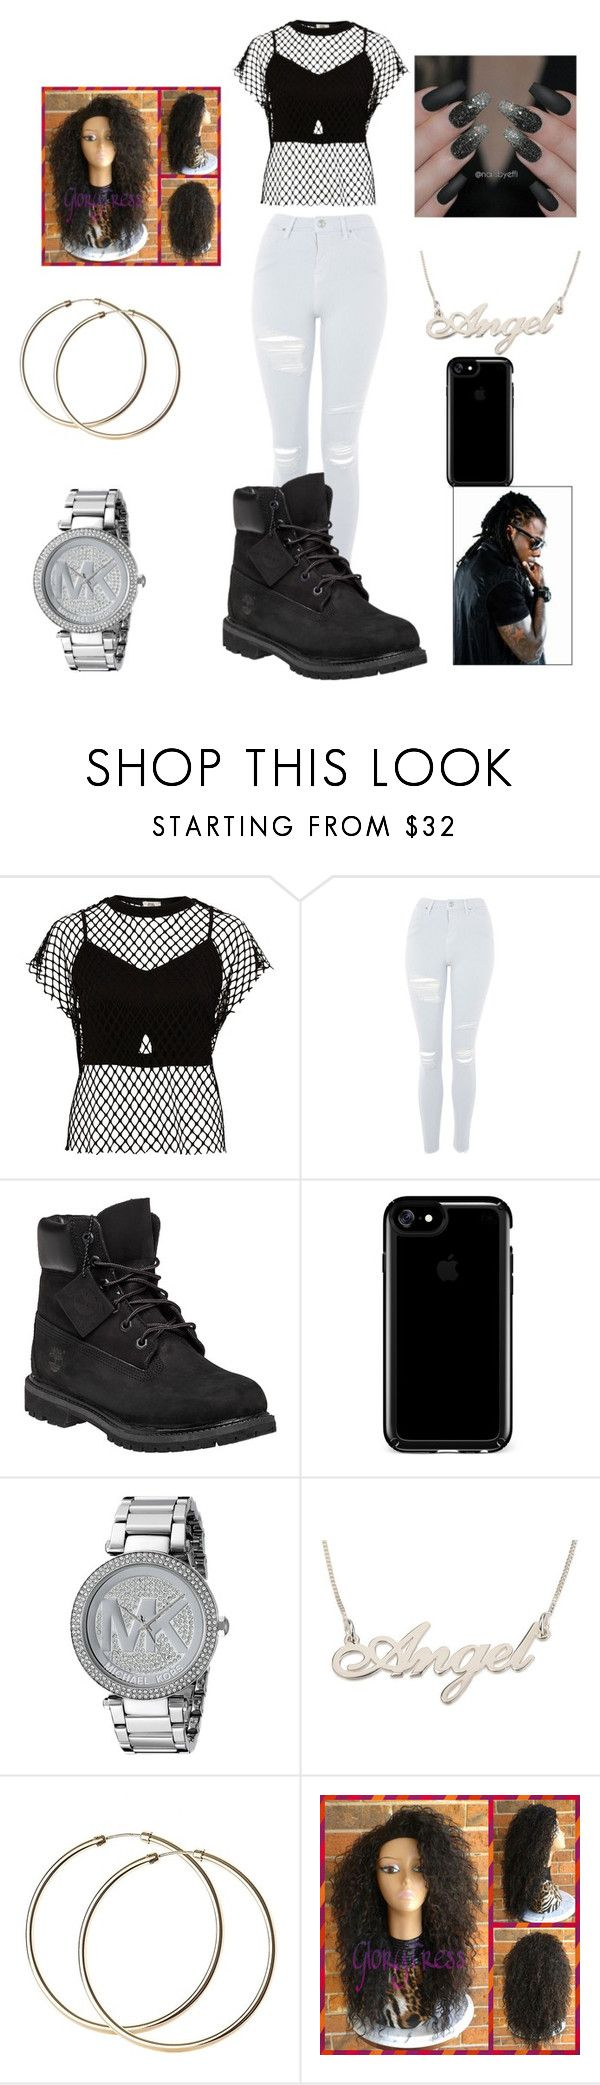 """ACE HOOD"" by malachiaewarrenwifeyjunnewarre on Polyvore featuring River Island, Topshop, Timberland, Speck and Michael Kors"